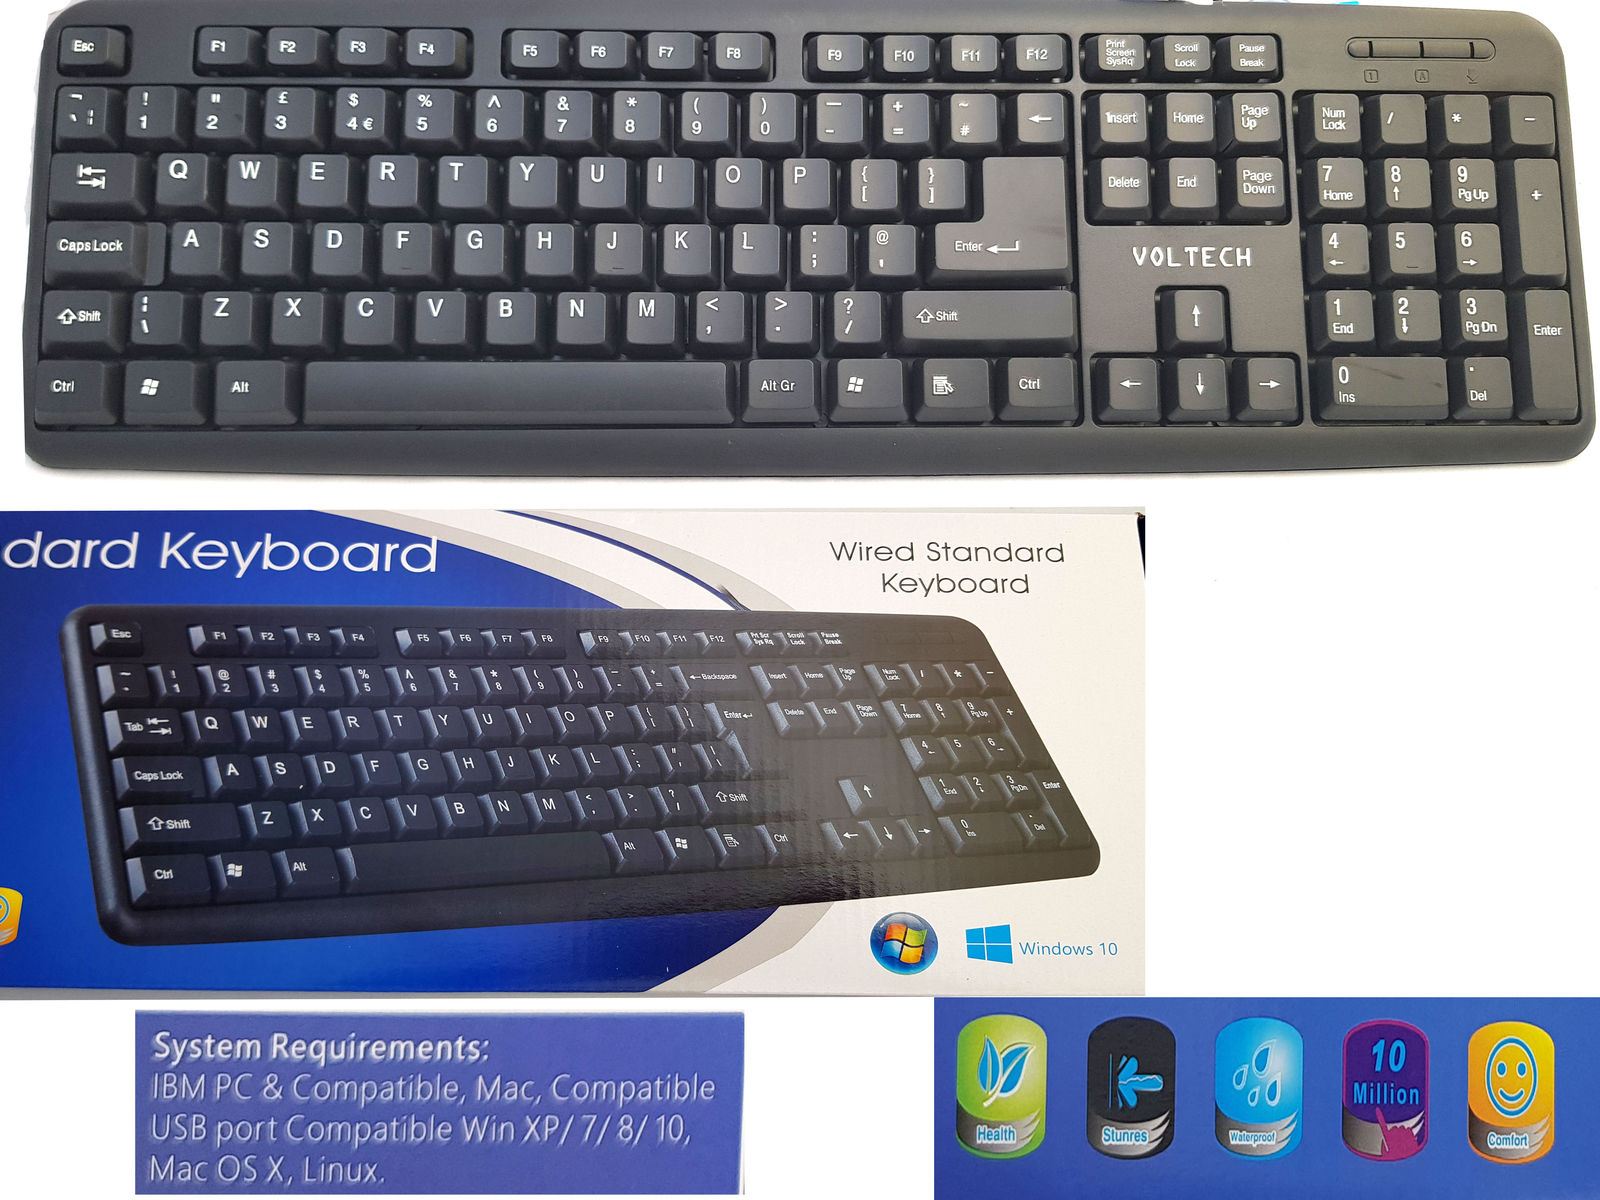 Wired Usb Keyboard For Laptop Dell Hp Pc Computer Desktop Notebook - Dell Usb Keyboard Wiring Diagram Keystrokes